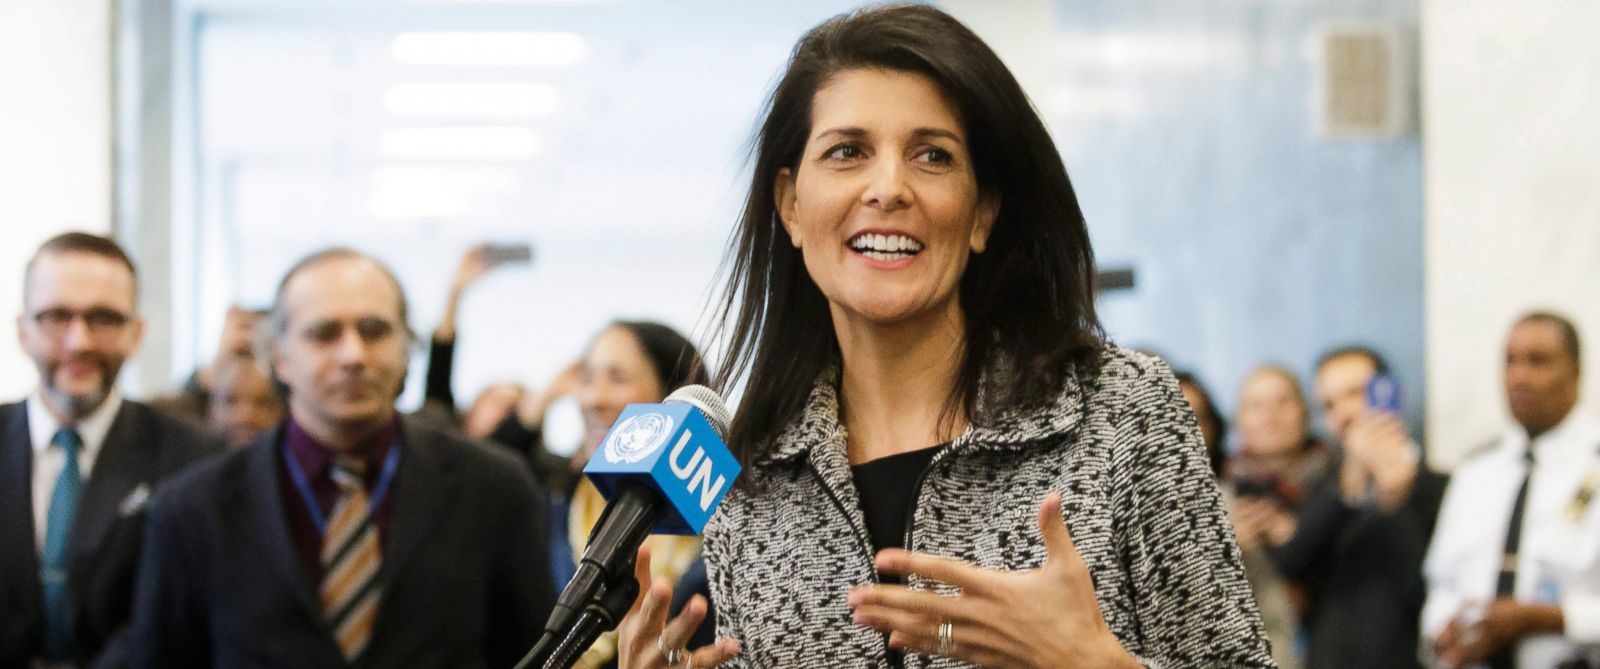 PHOTO: Ambassador Nikki Haley, the new United States Ambassador to the United Nations, talks to reporters as she arrives to the United Nations headquarters for the first time, in New York, 27 Jan. 27, 2017.